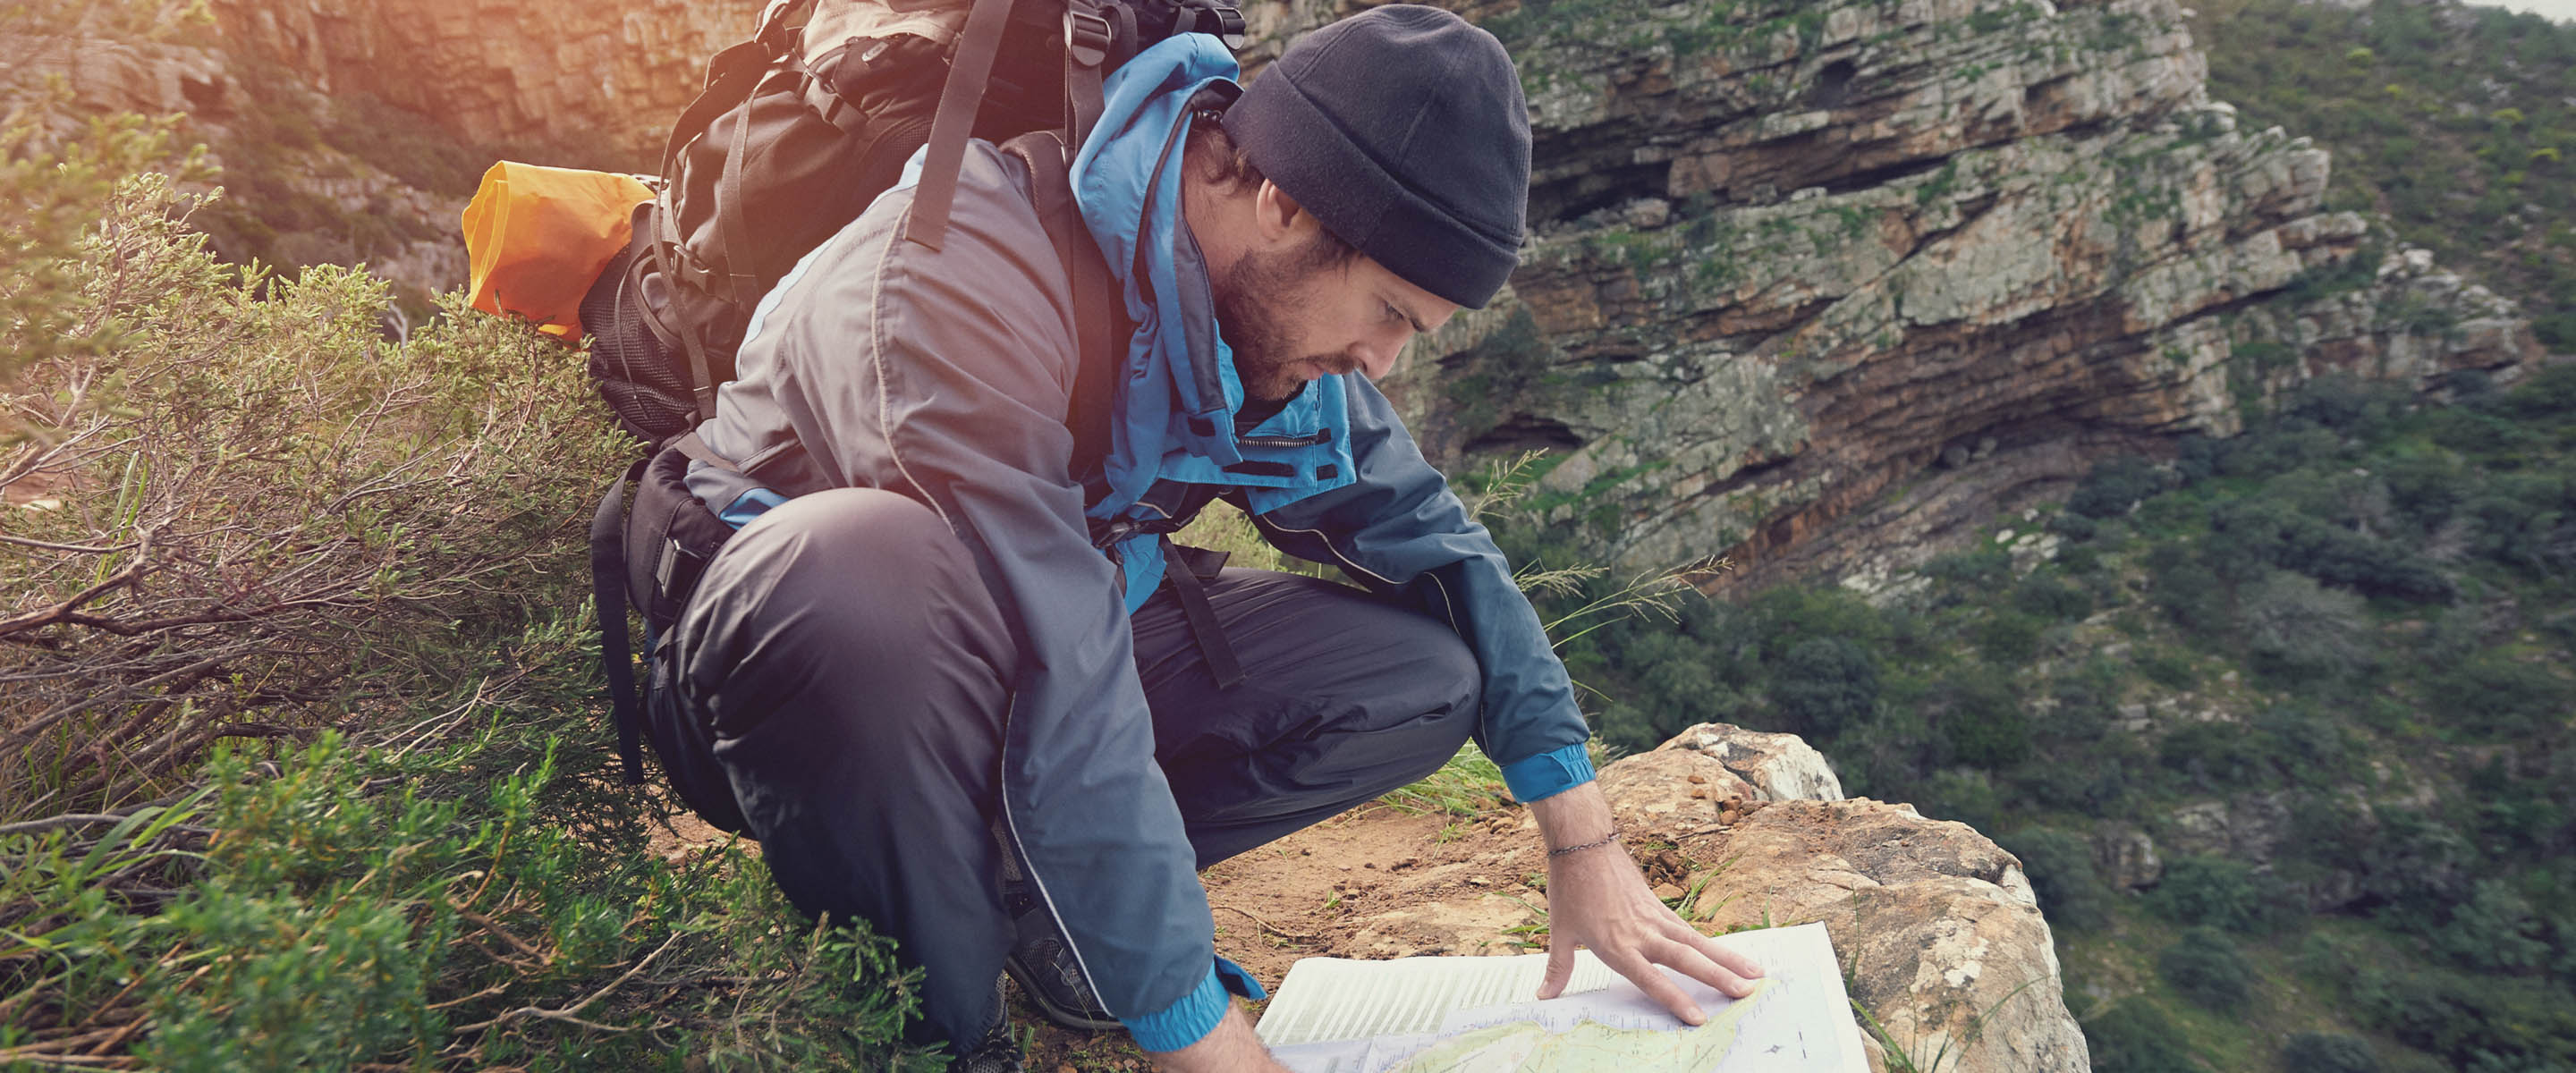 Planning a route using a map while hiking